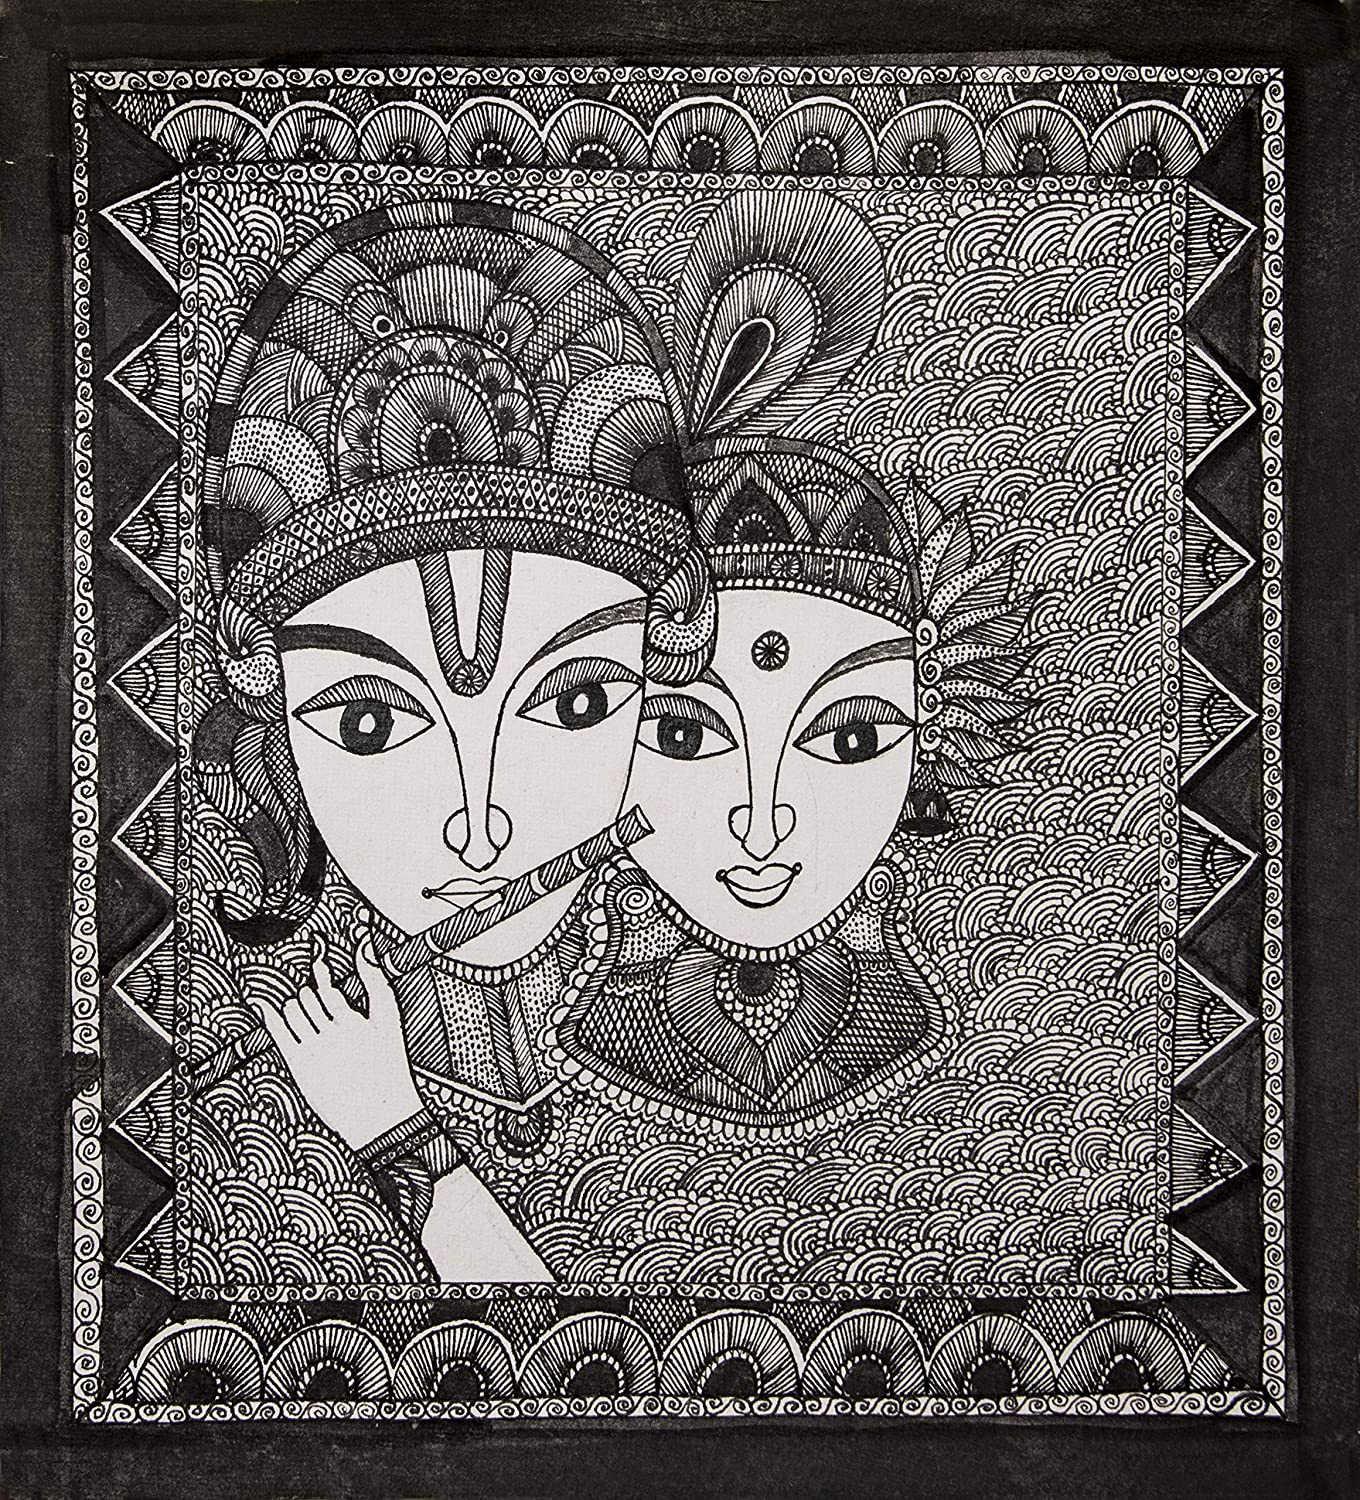 Hunar The Art Gallery Hand Painted Black And White Madhubani Painting On Canvas For Home Wall Decoration Square Shape Amazon In Home Kitchen